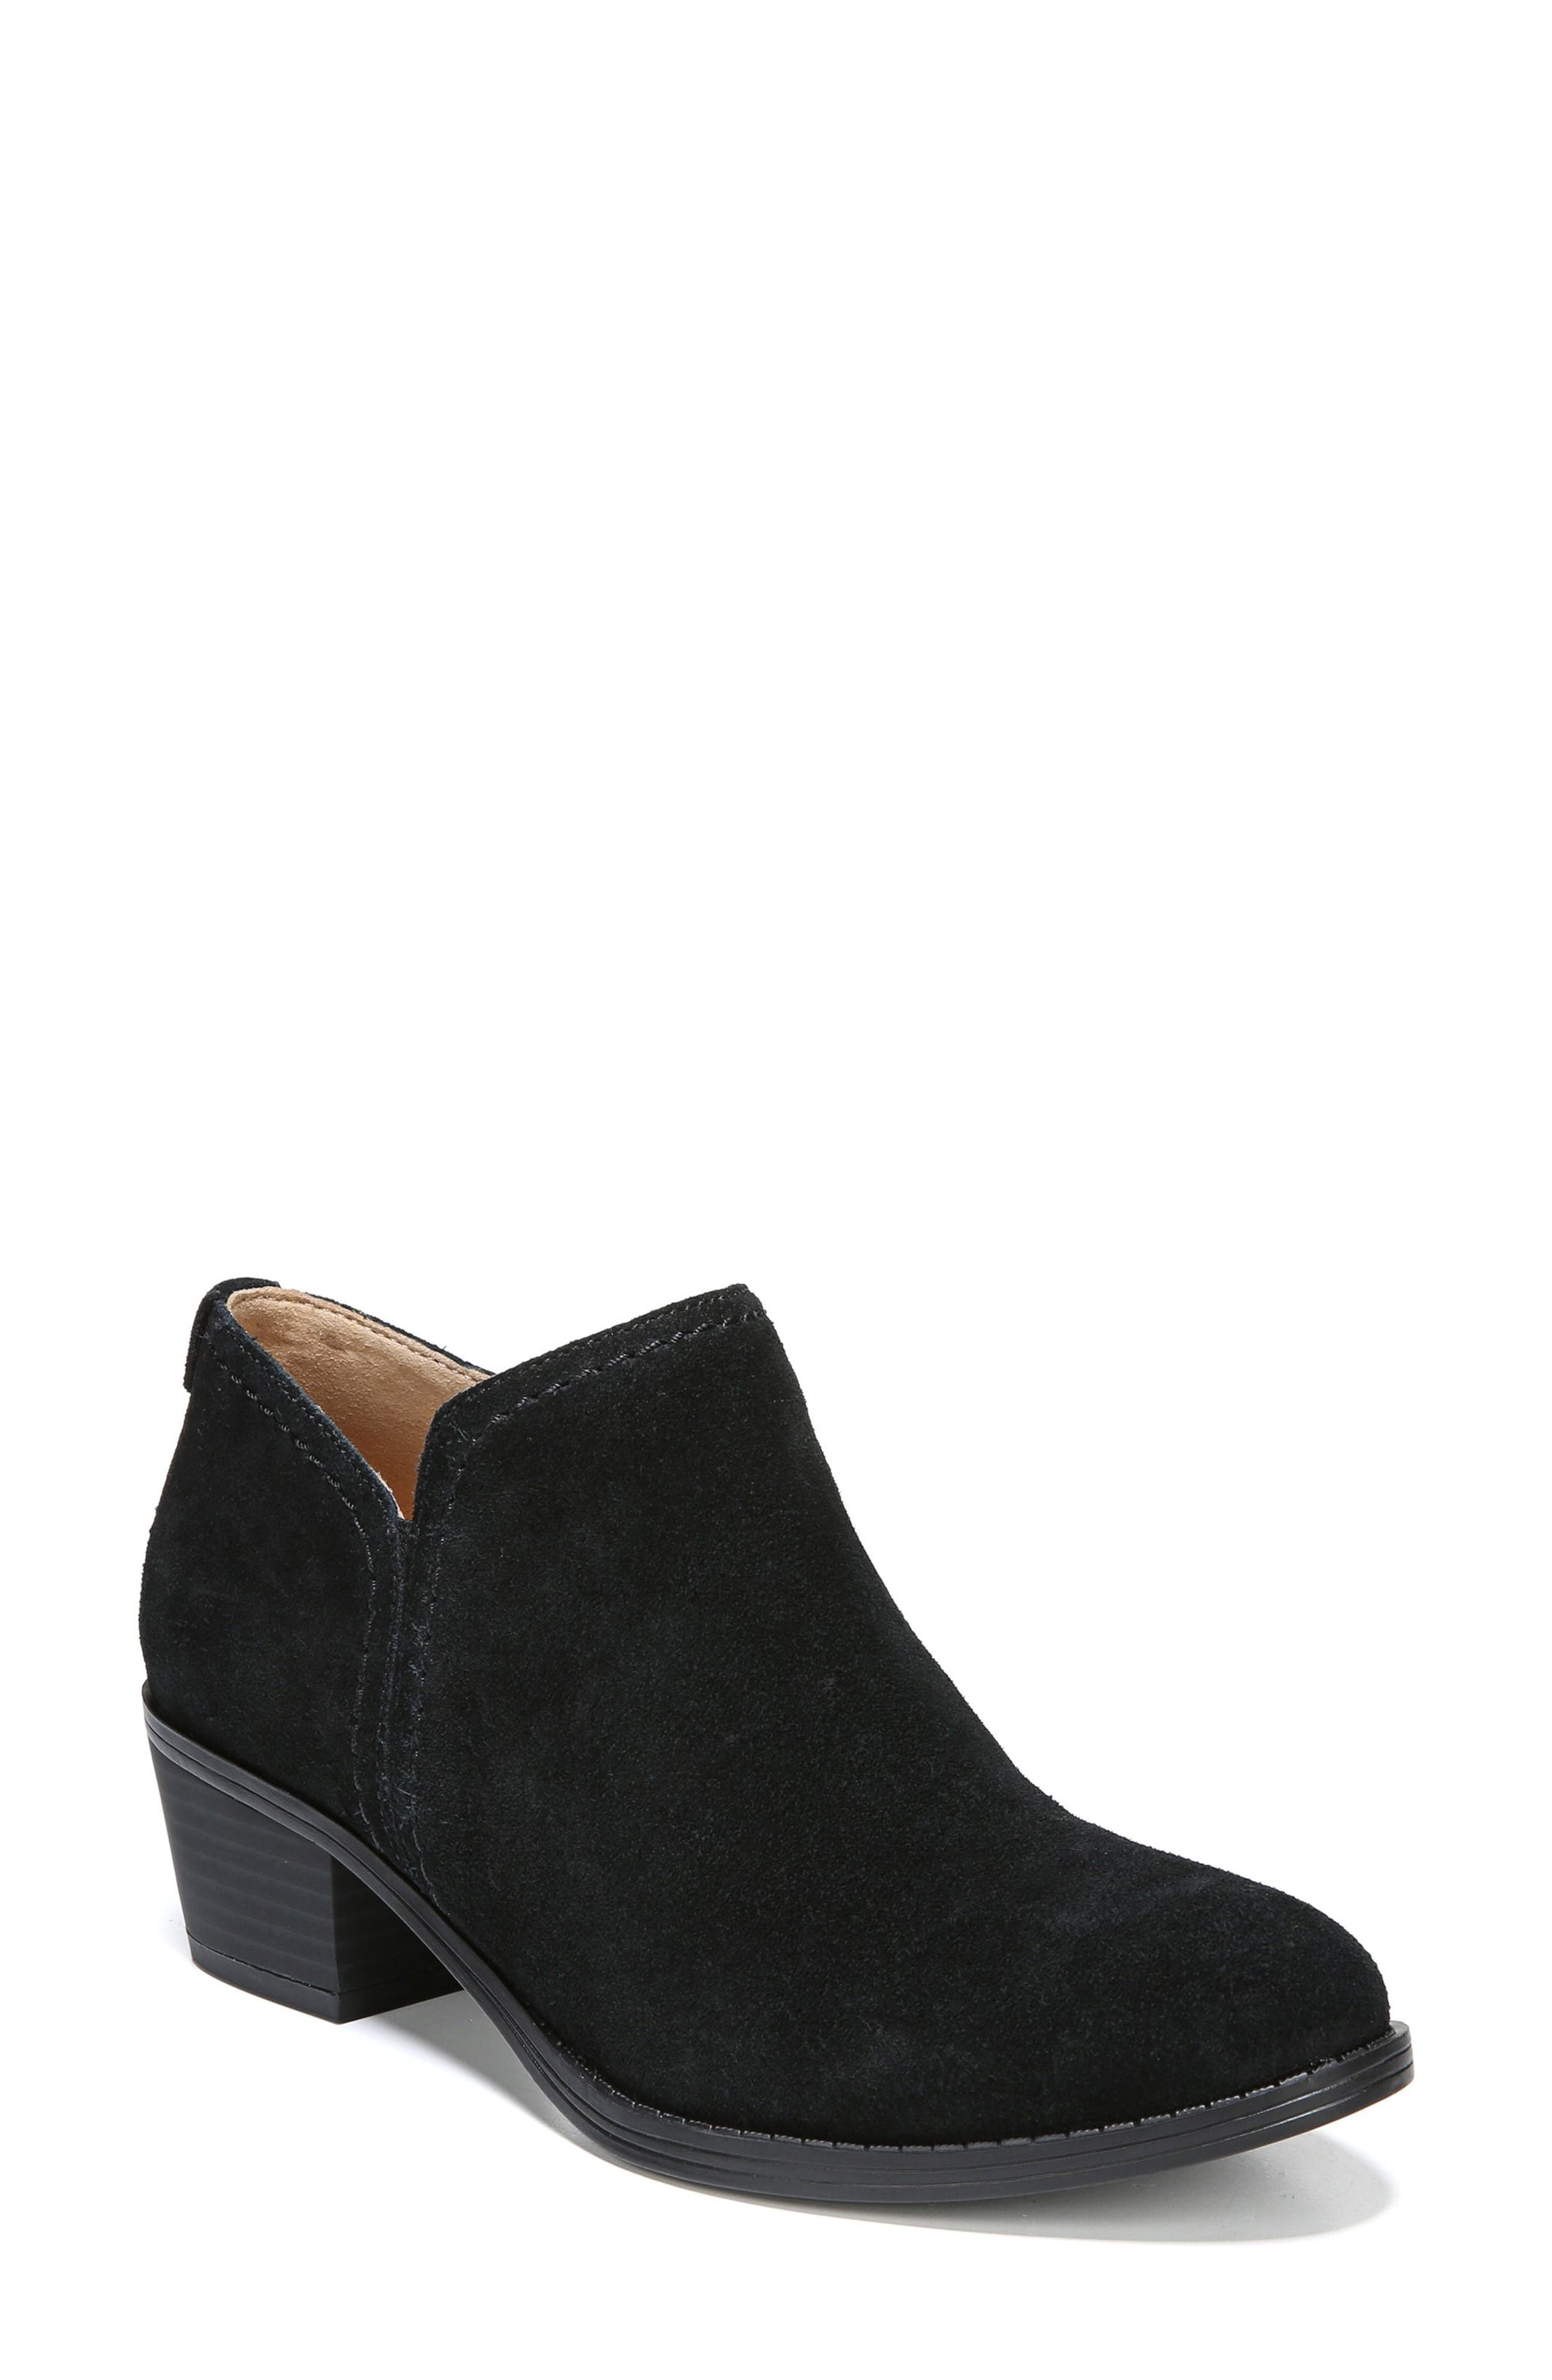 NATURALIZER, 'Zarie' Block Heel Bootie, Main thumbnail 1, color, 012